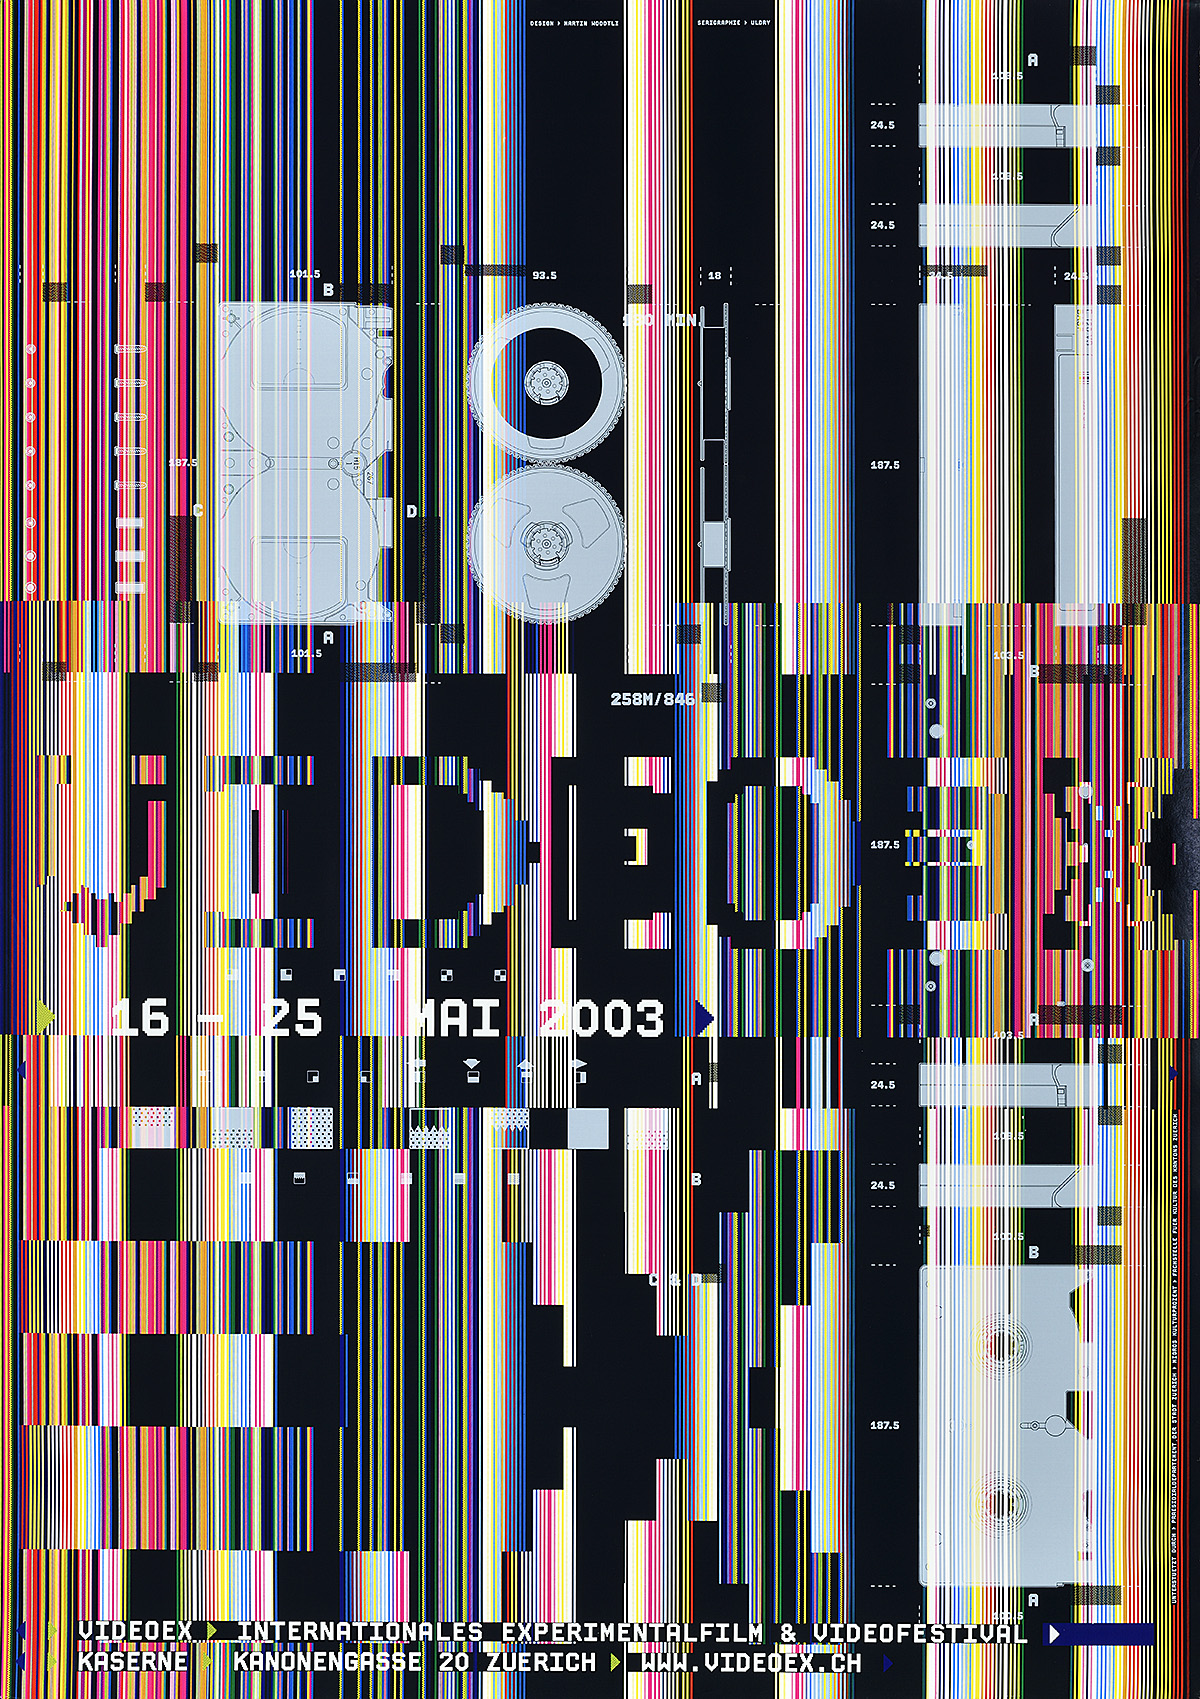 photographic poster of many video images overlapping